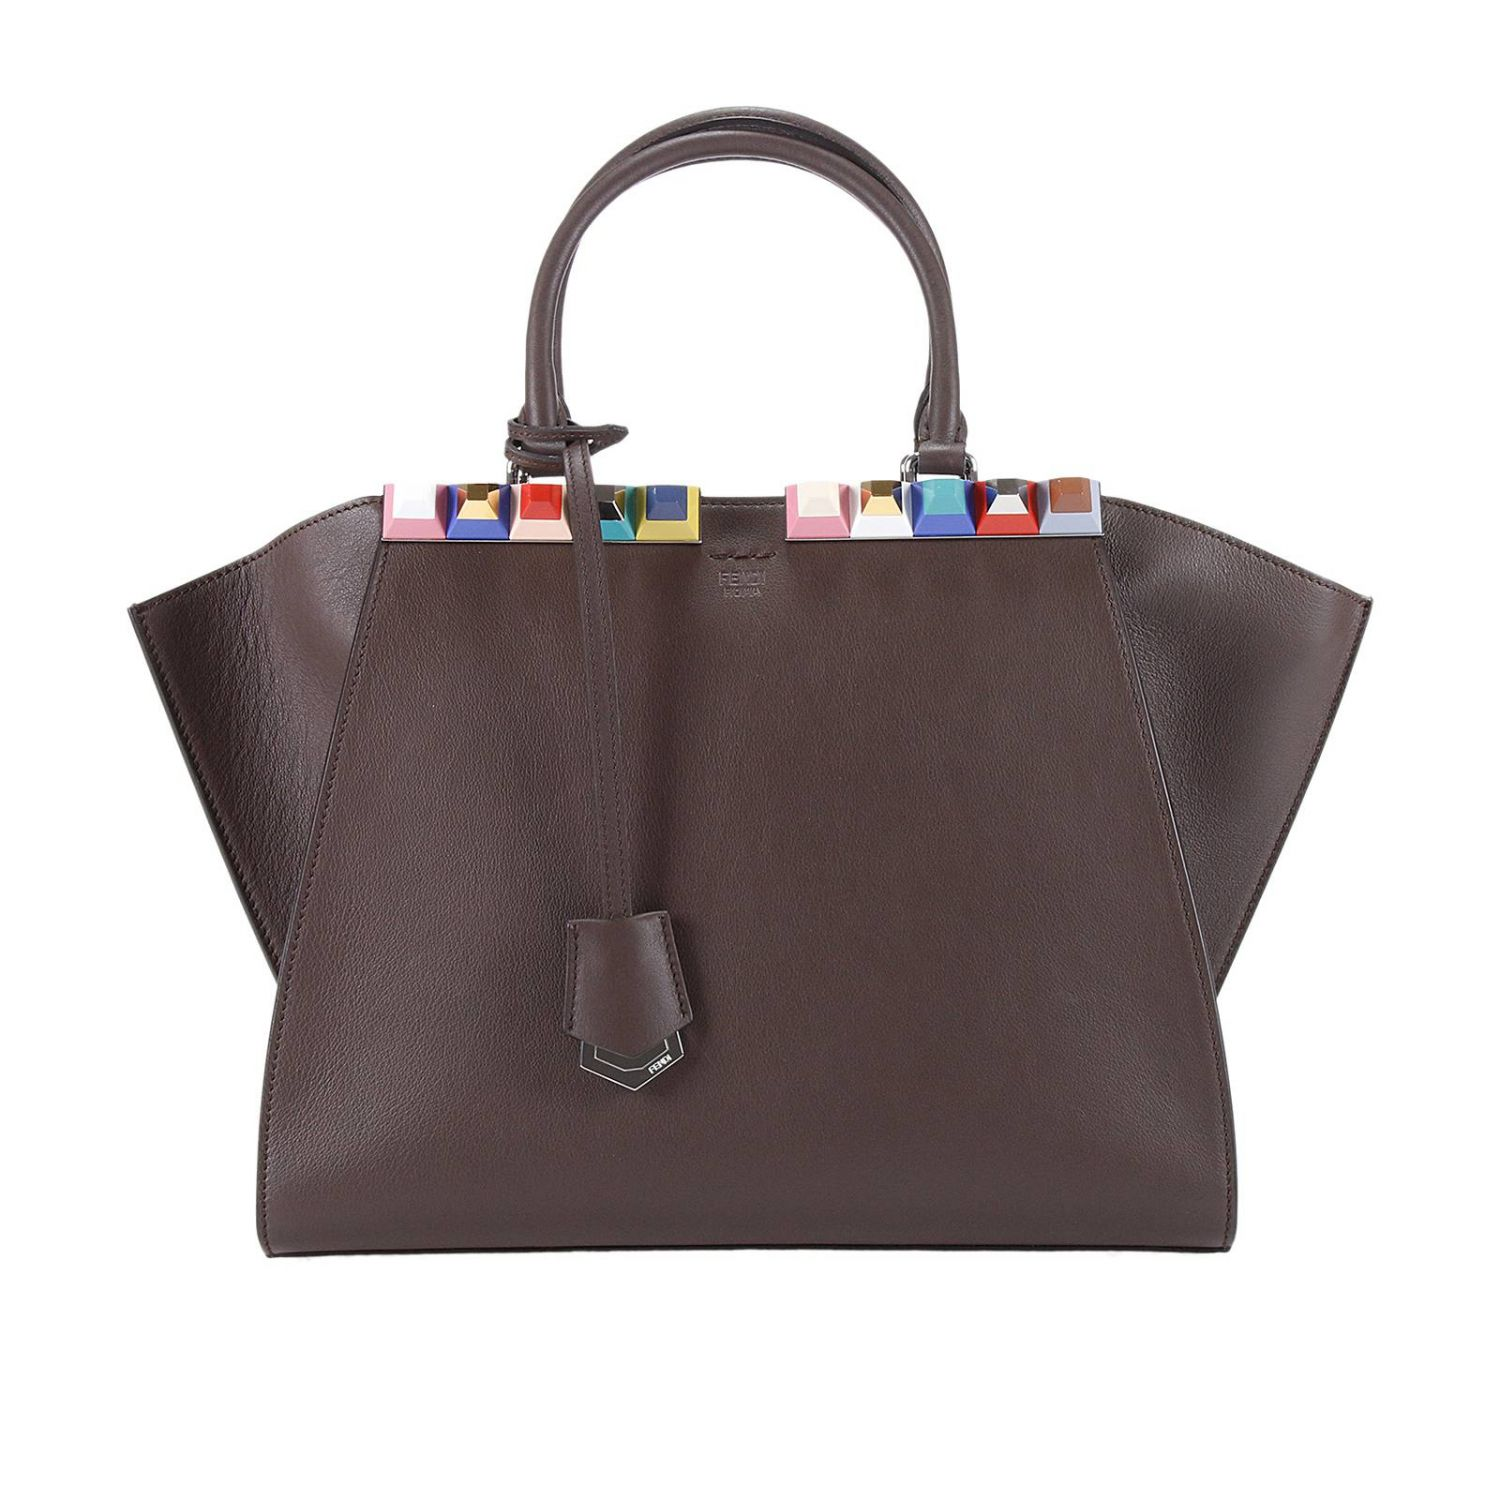 Handbag Handbag Women Fendi 8162879